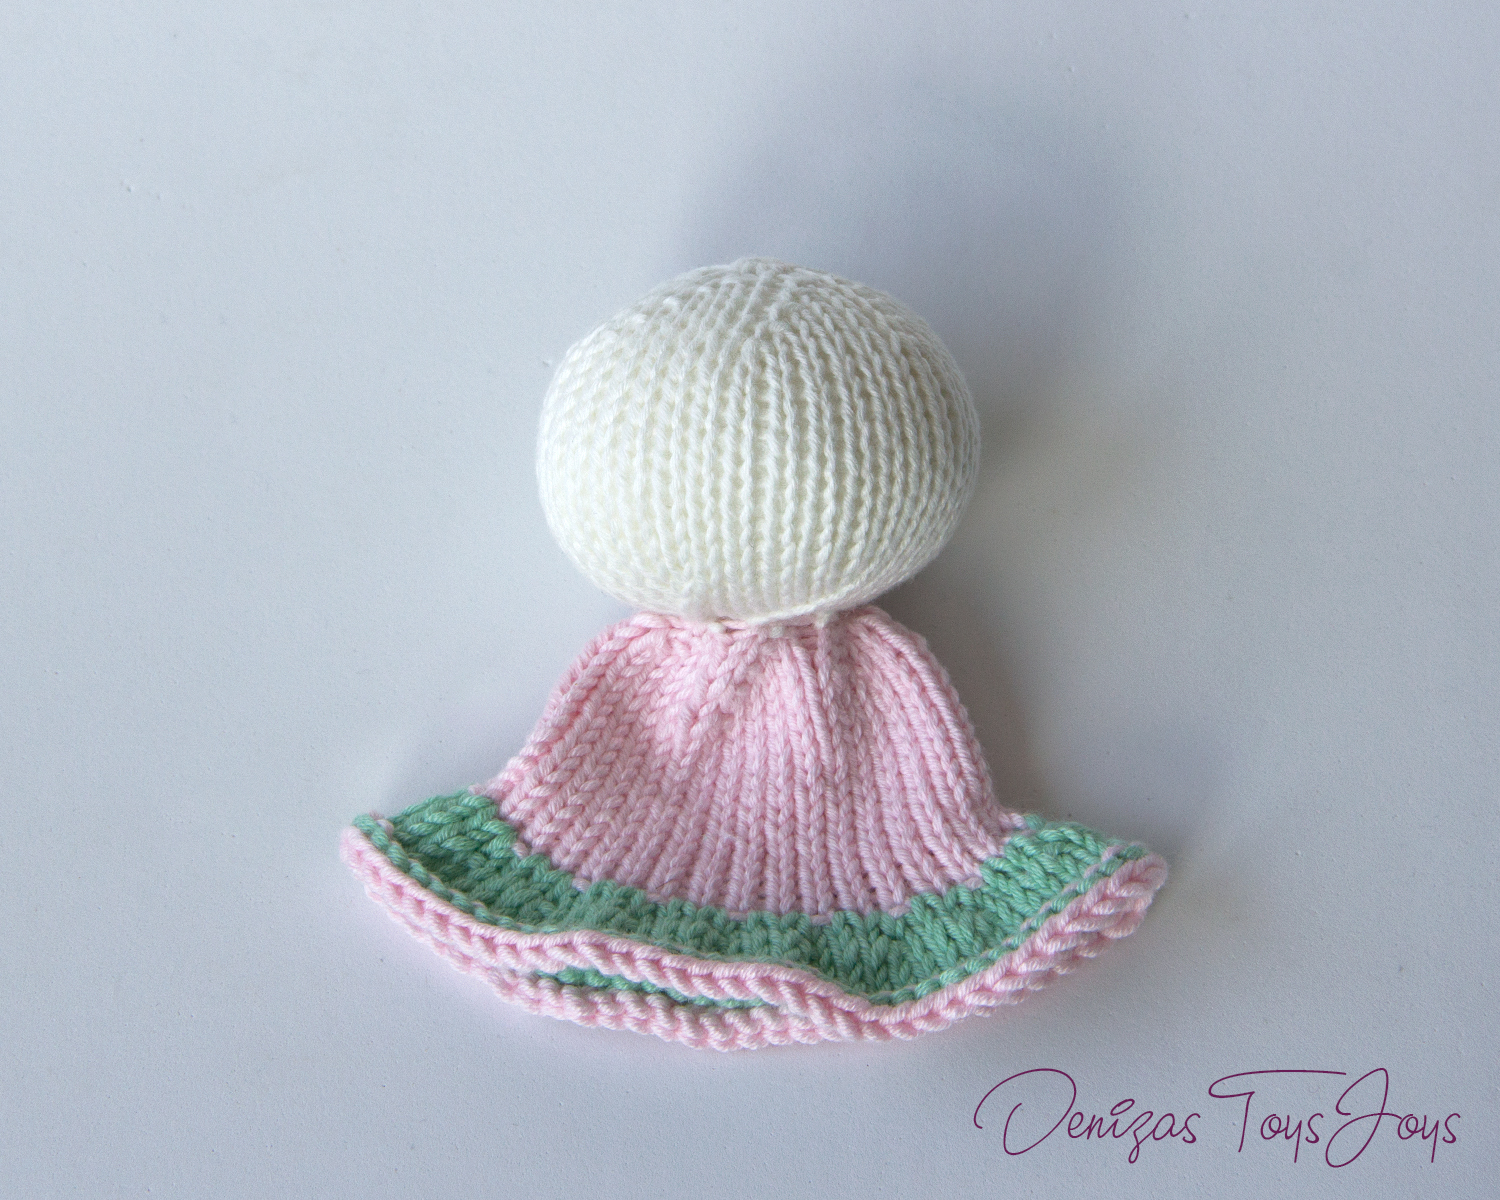 Knitting Joining Yarn In The Round : Denizas toys joys bunny egg cozy free knitting pattern